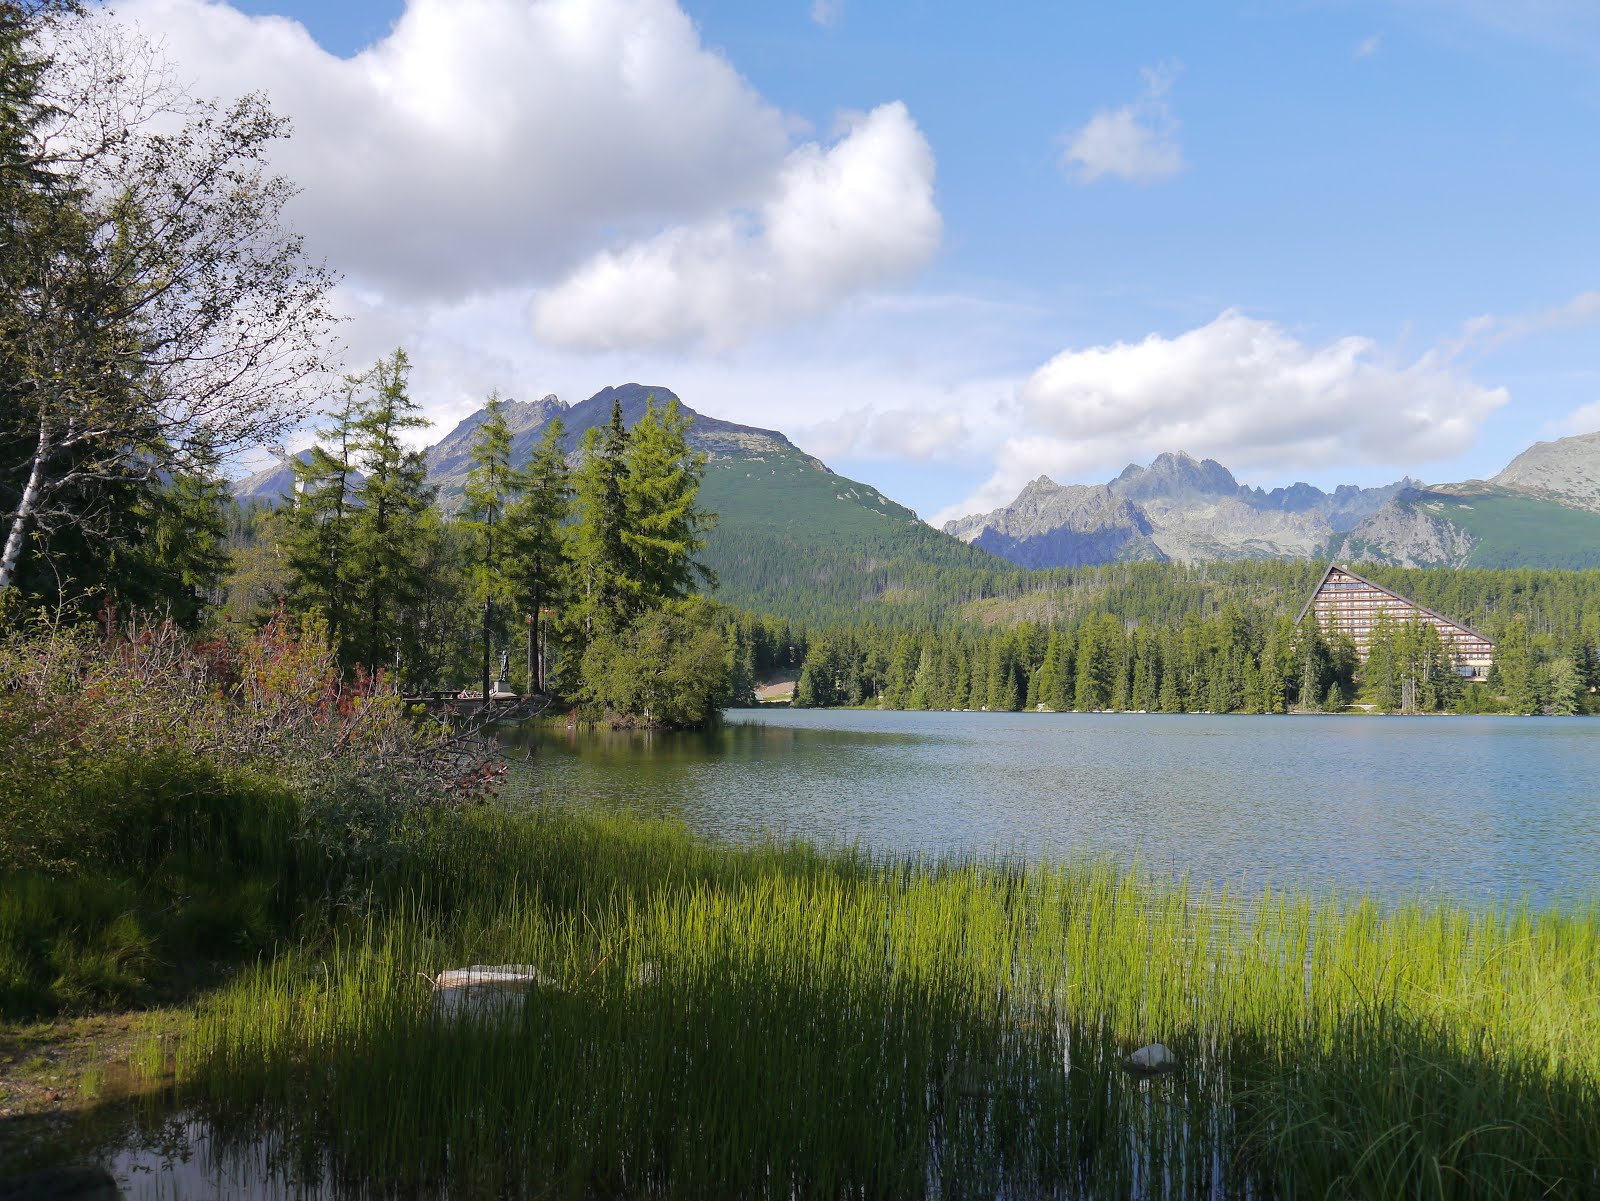 August: Exploring the beauty of High Tatras in Slovakia